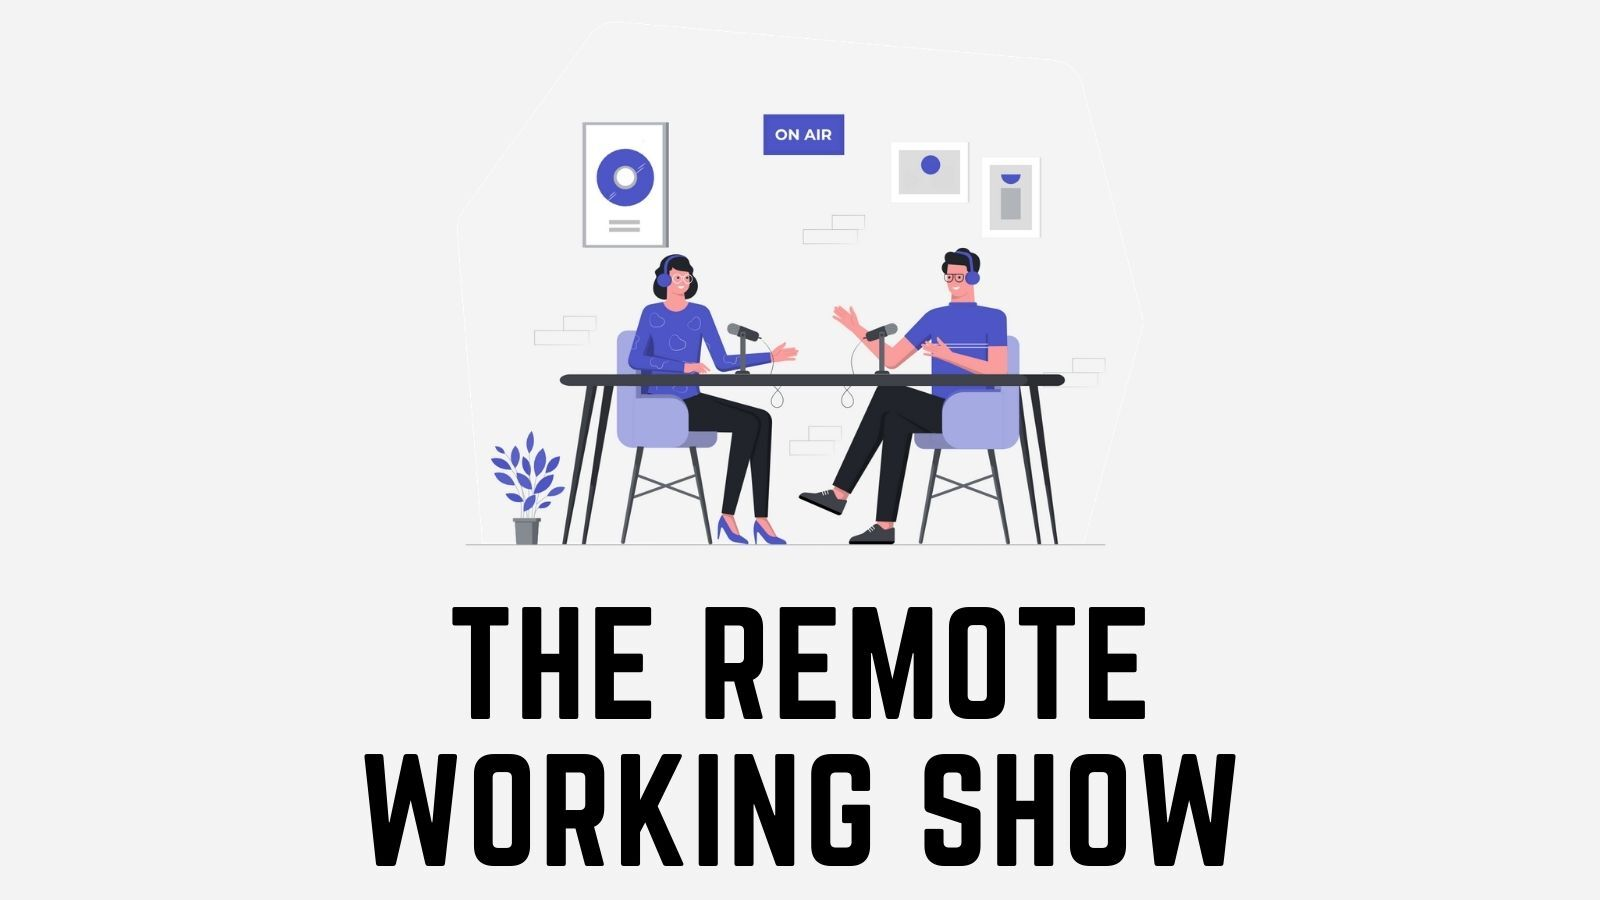 the remote working show